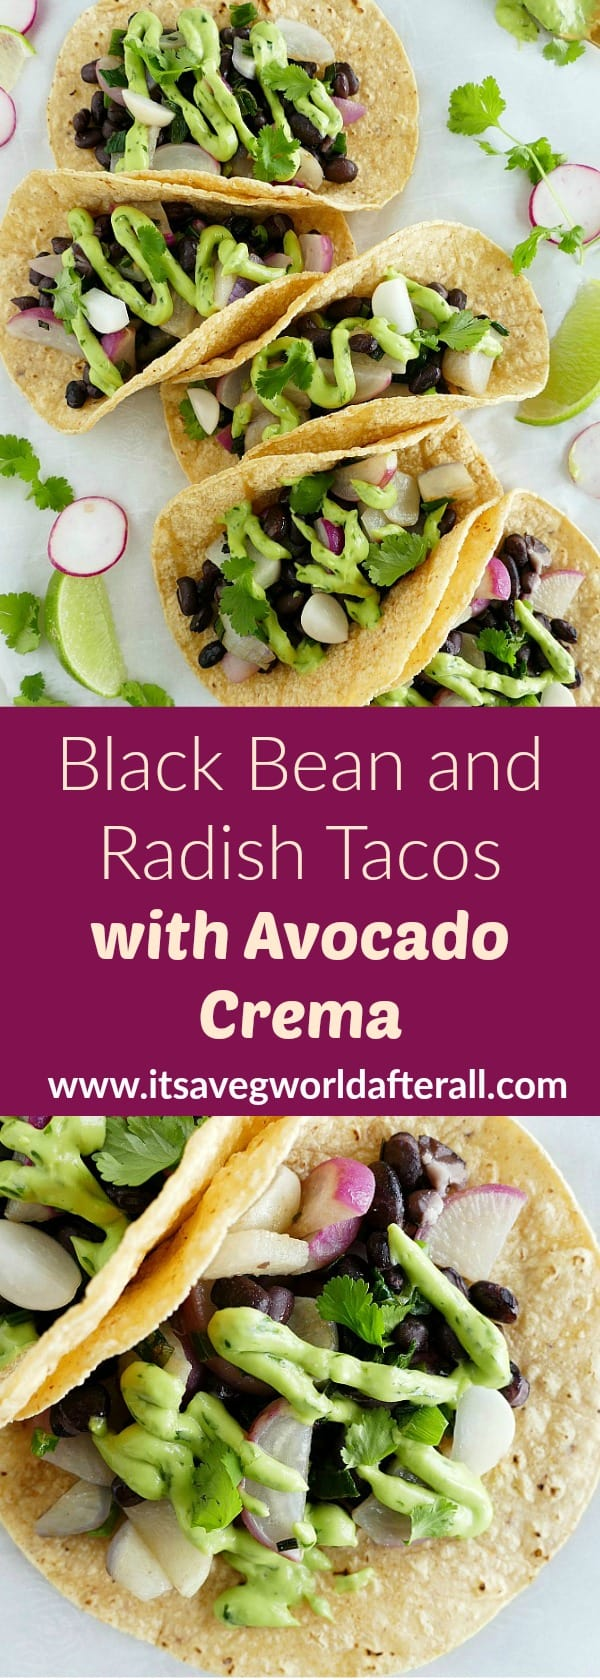 Radish and Black Bean Tacos pin